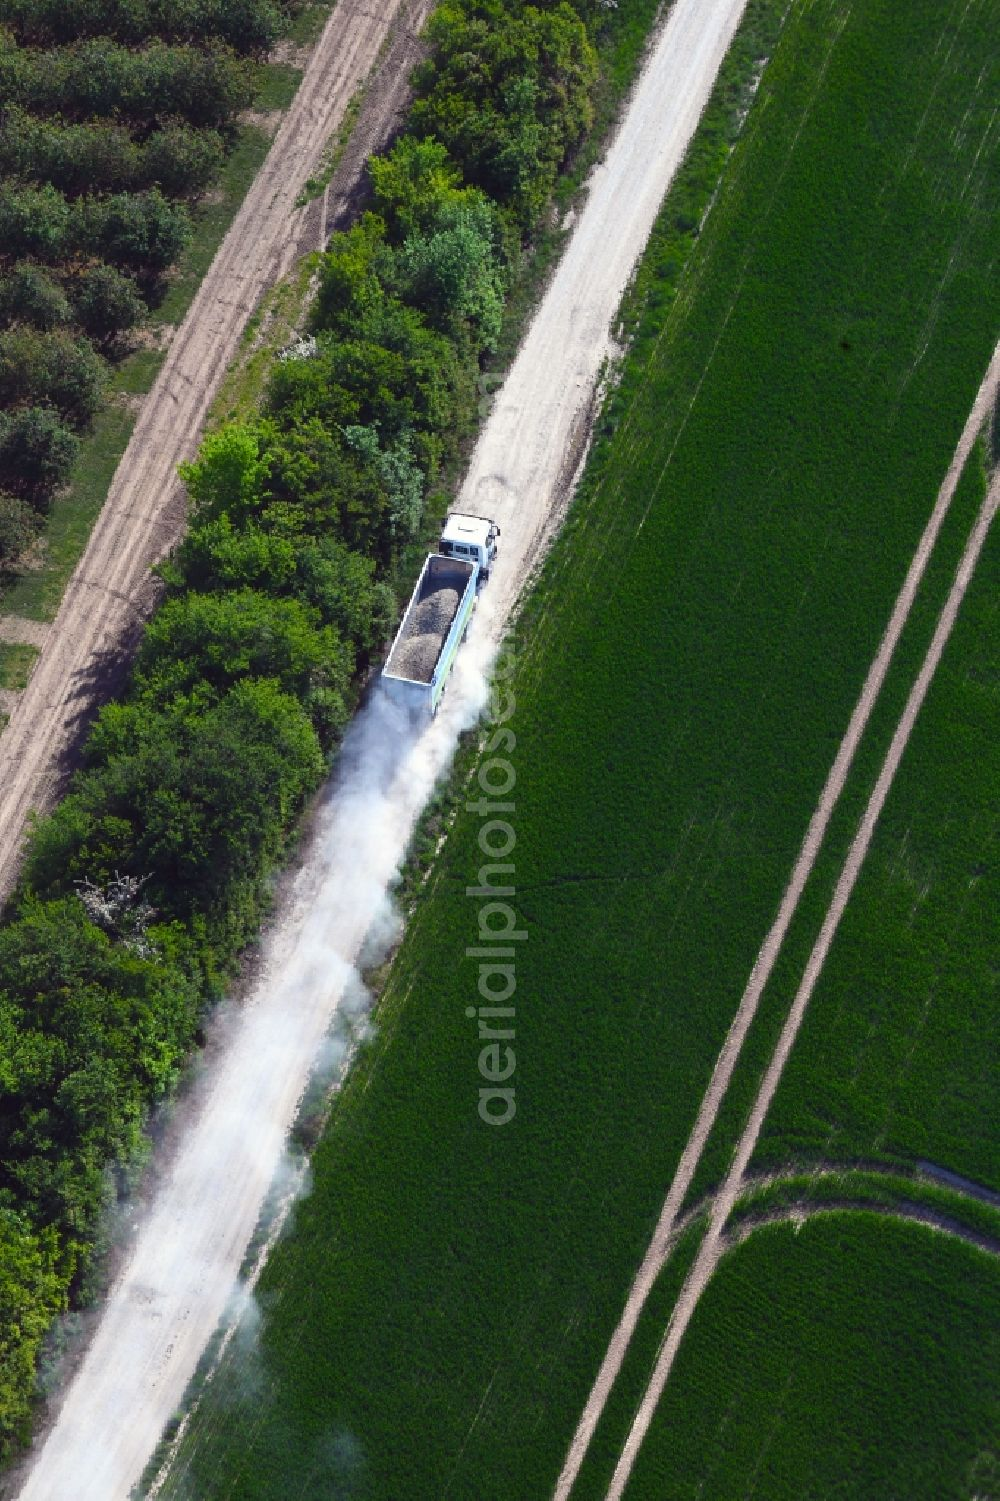 Felchta from above - Transport vehicles in agricultural fields in Felchta in the state Thuringia, Germany